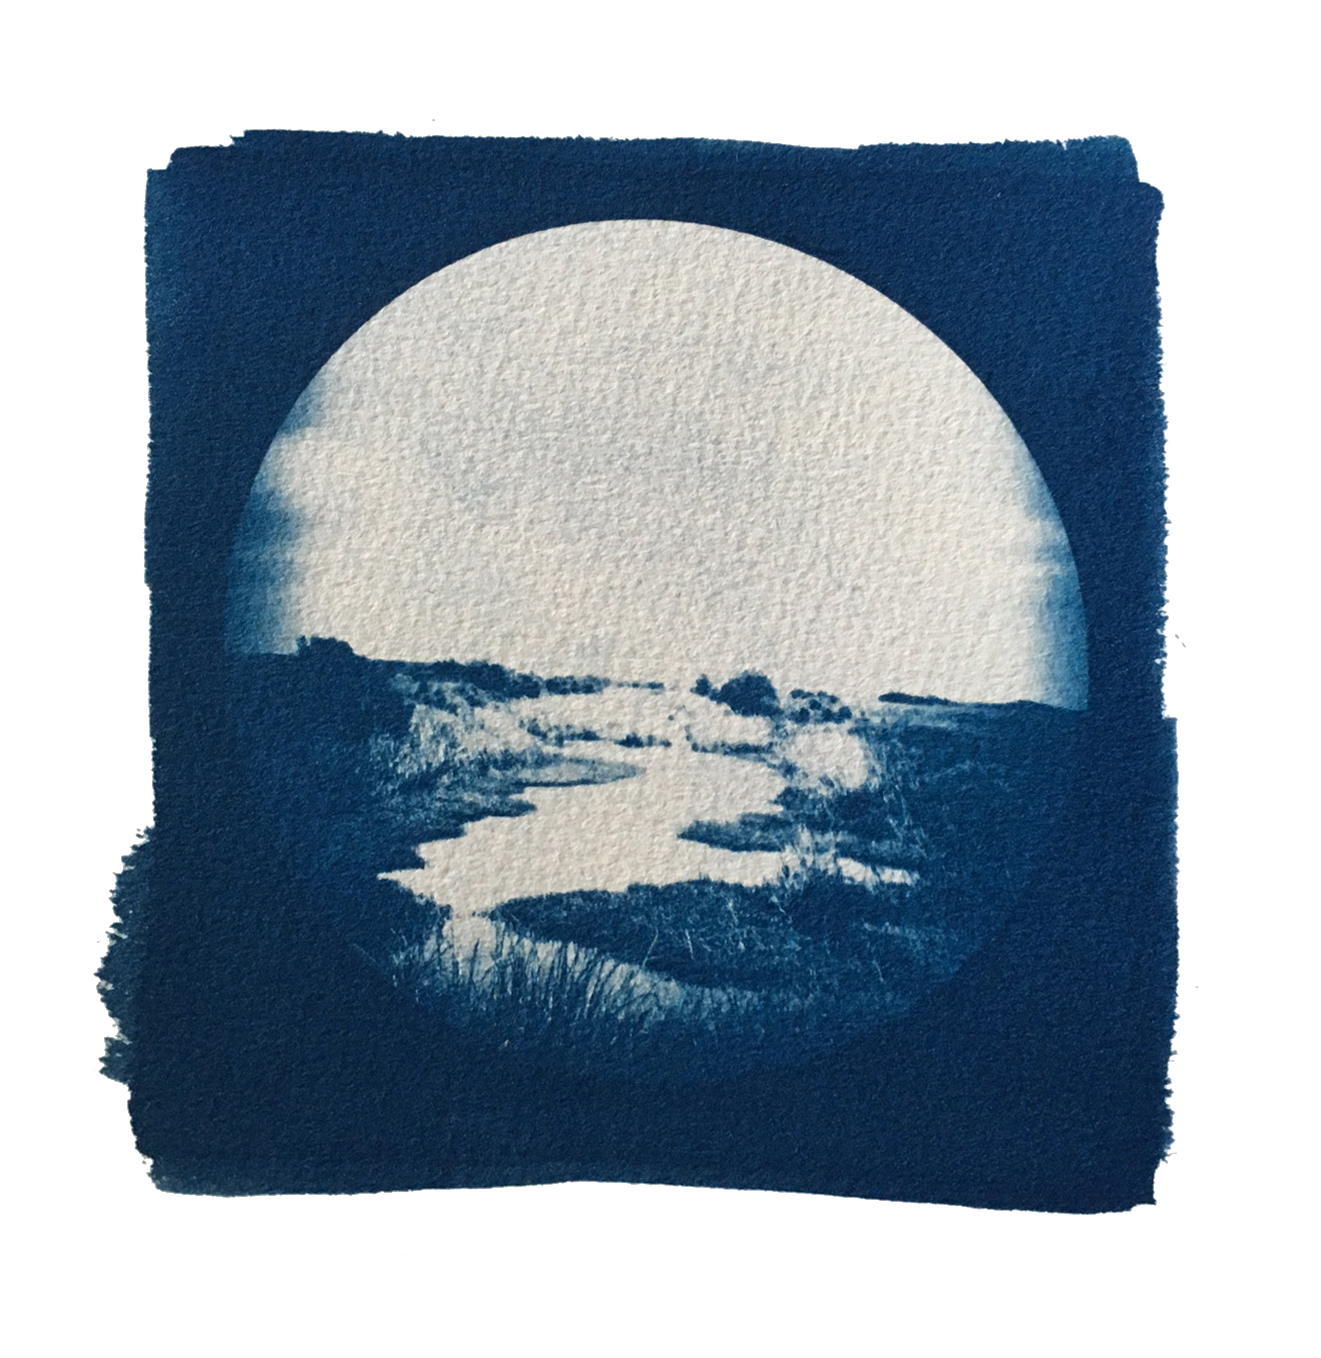 "TITLE /  Partner With the Sun No. 6  MEDIUM /  Cyanotype Print, Printed on 100% Cotton Paper  SIZE /  7"" x 7""  PRICE /  $200.00"